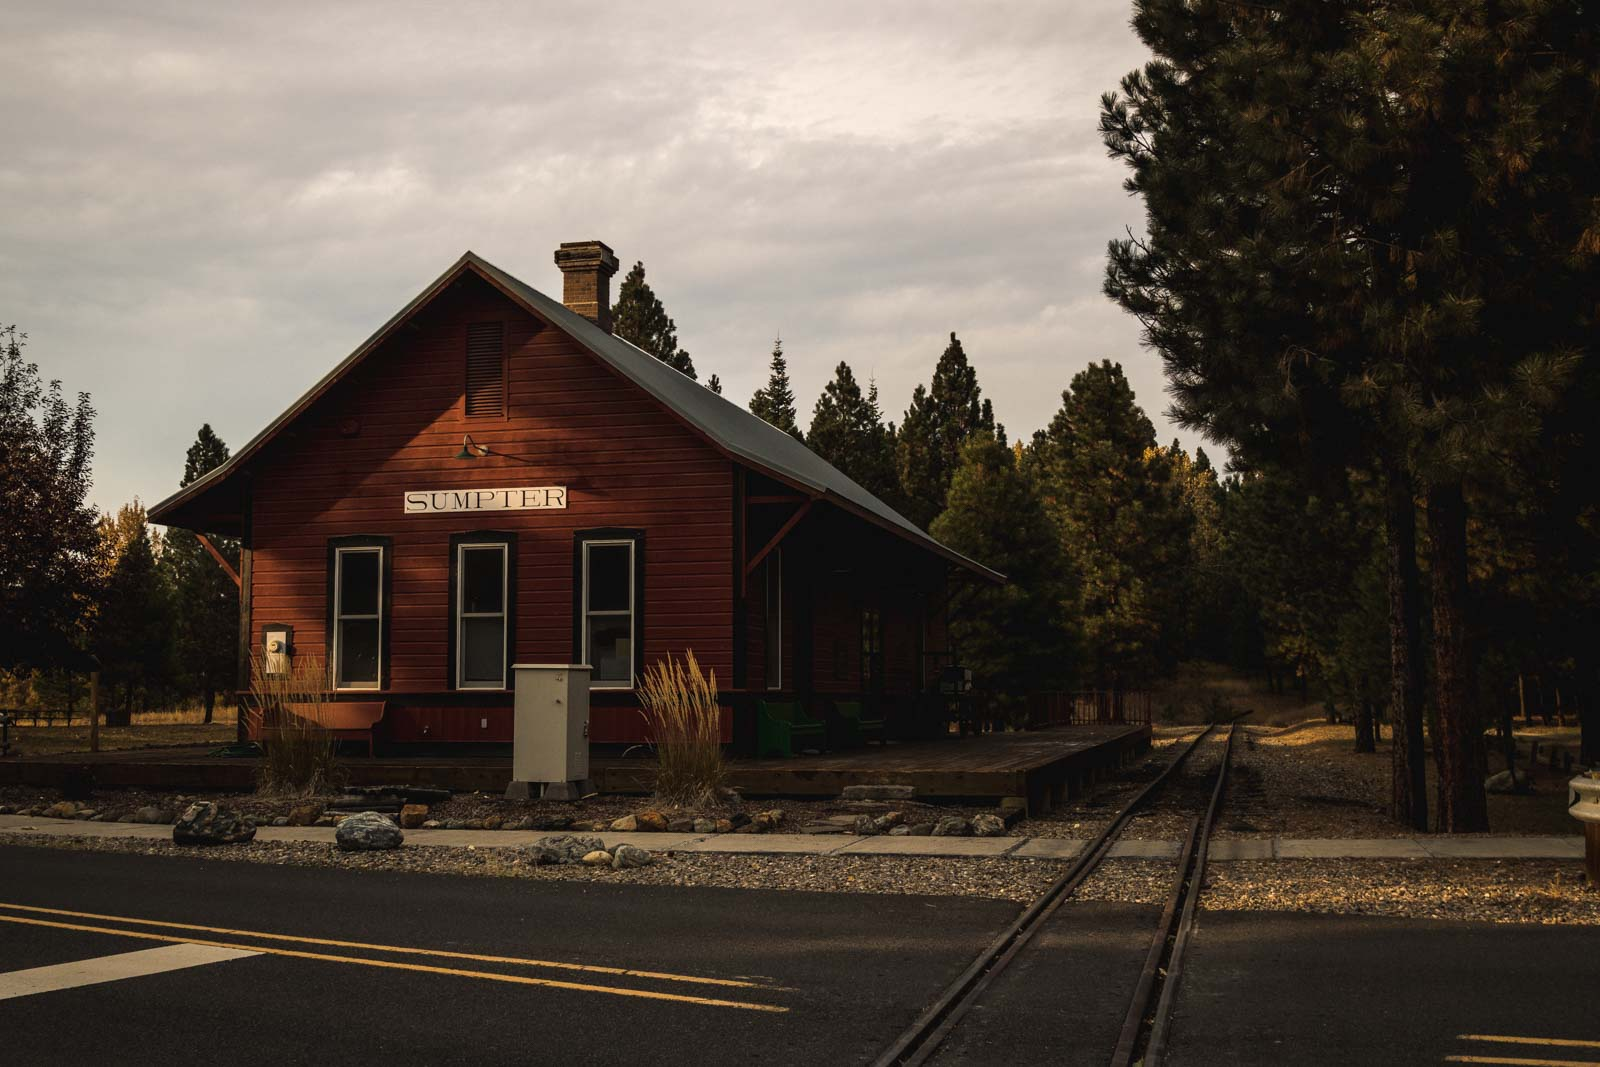 View of Sumpter Train Station